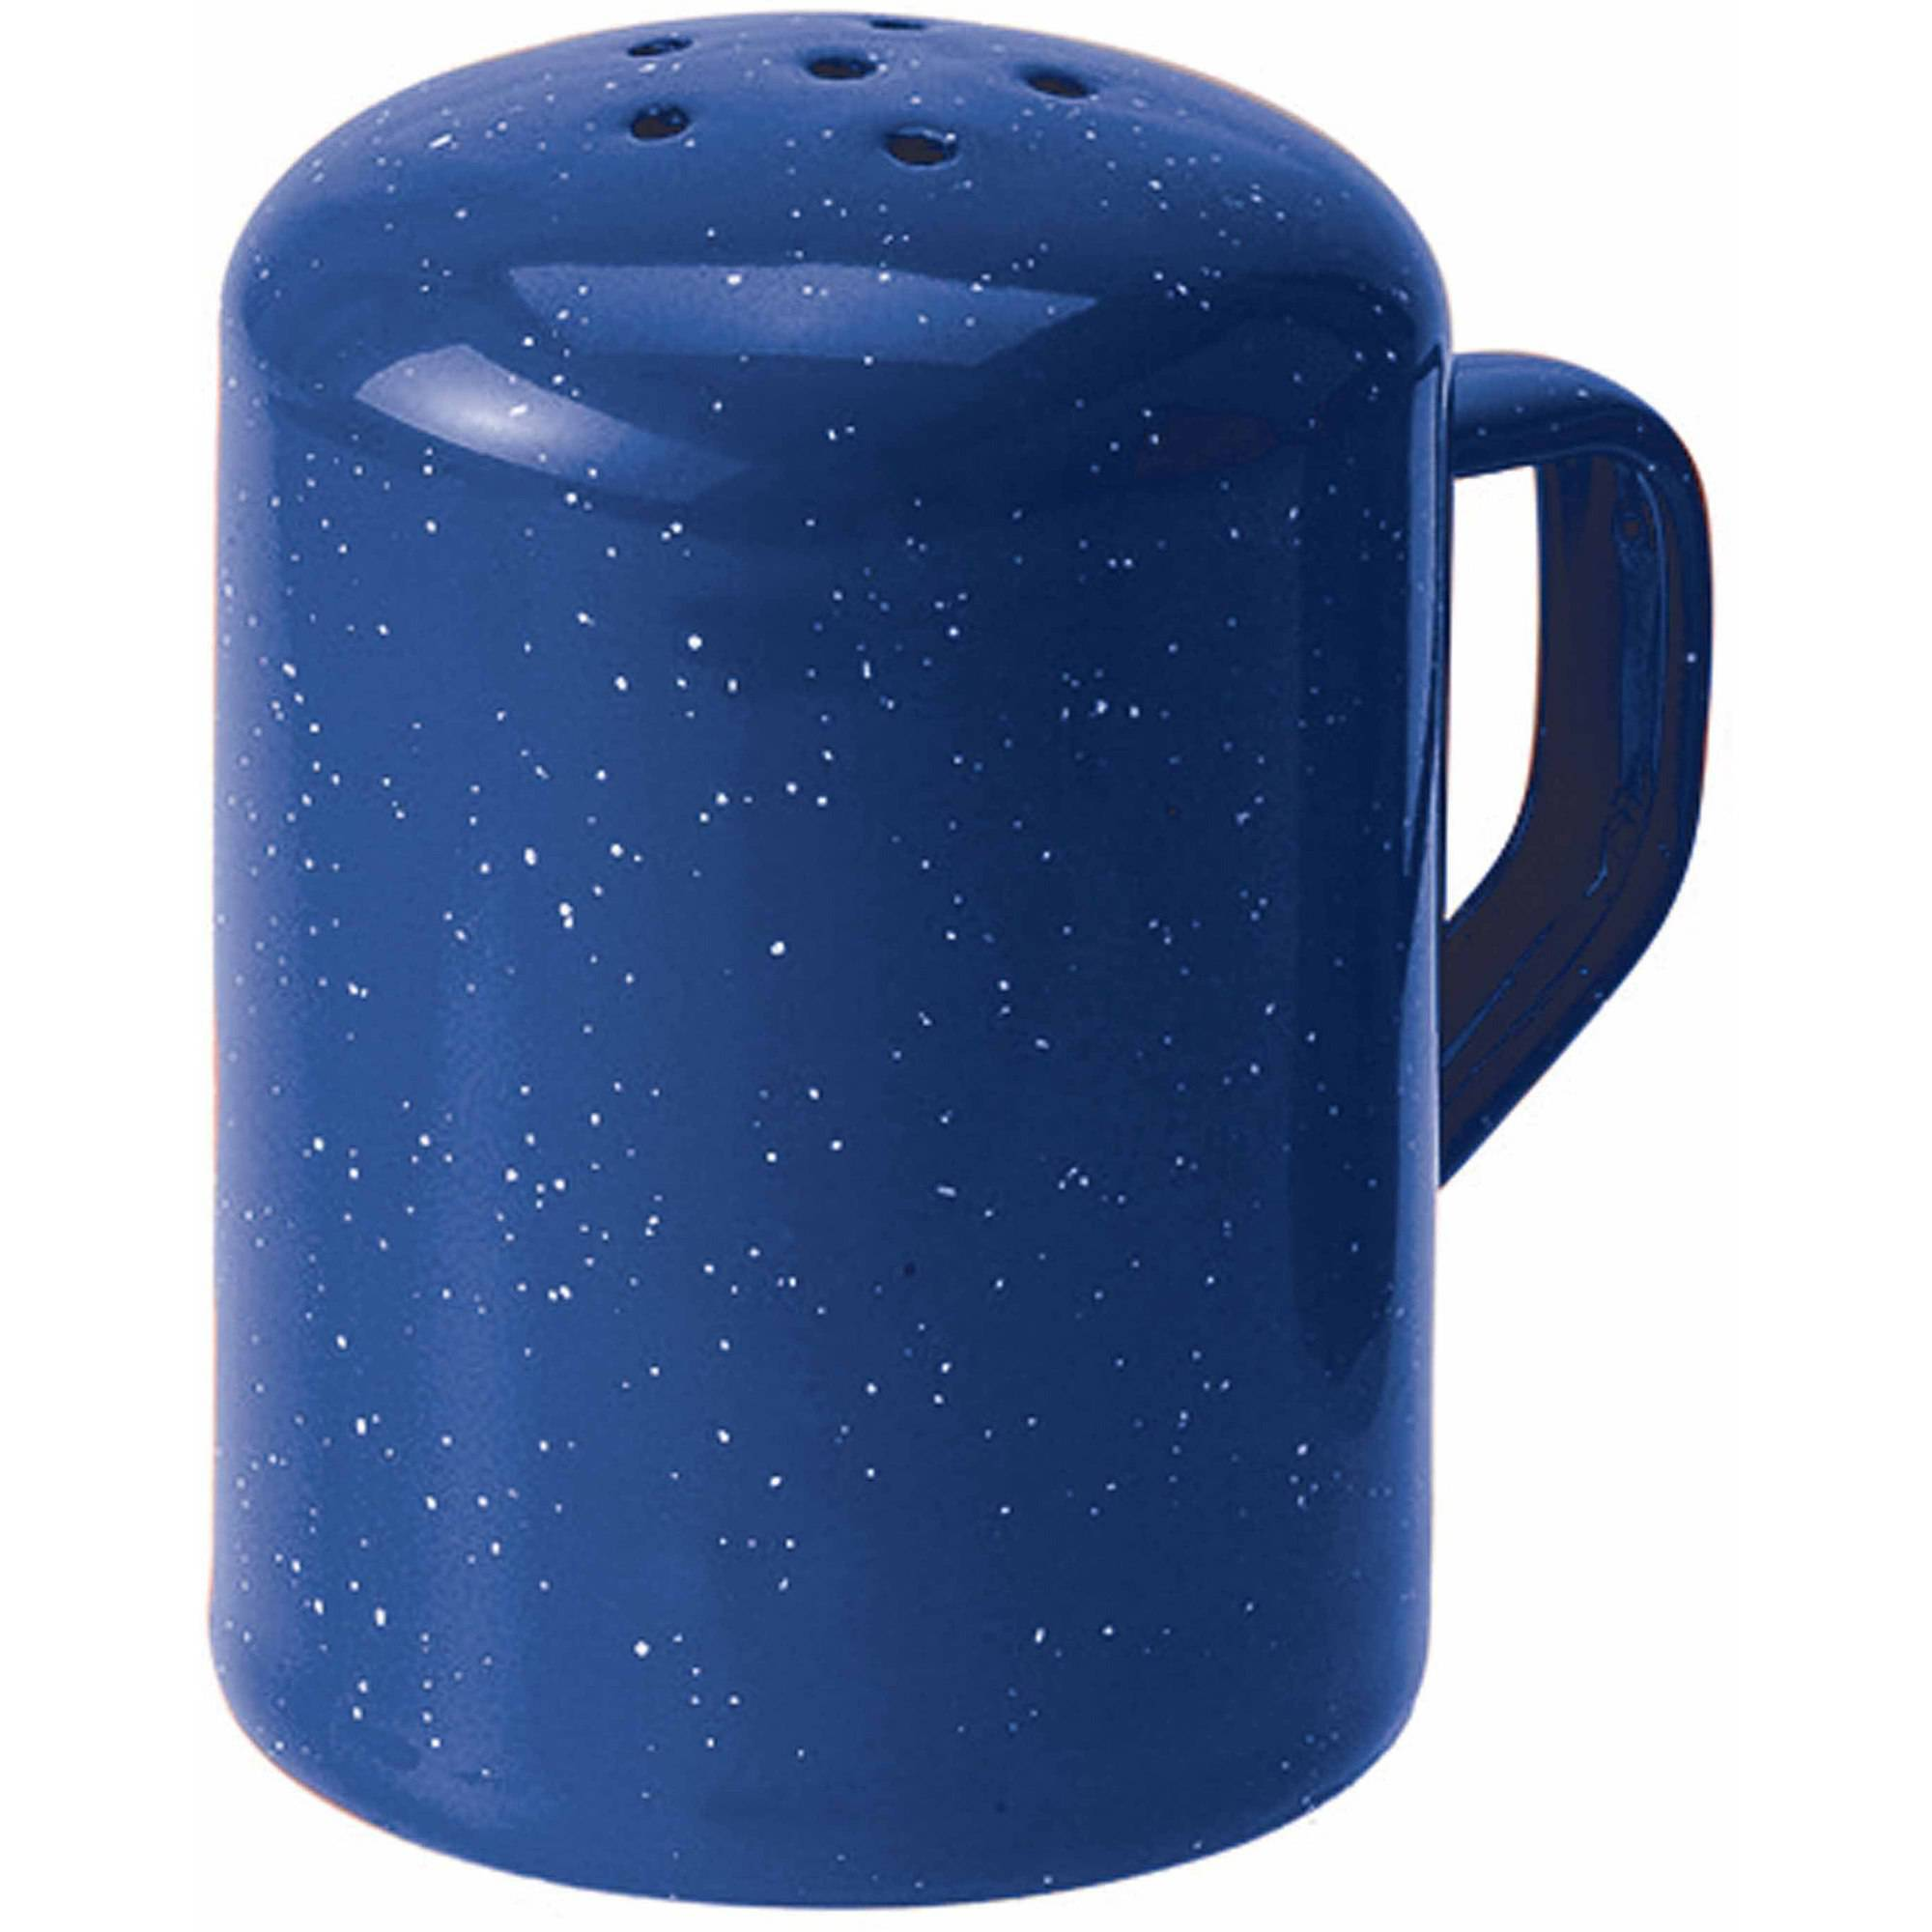 Bekina Gsi Outdoors Enamelware 6-Hole Pepper Shaker, Blue